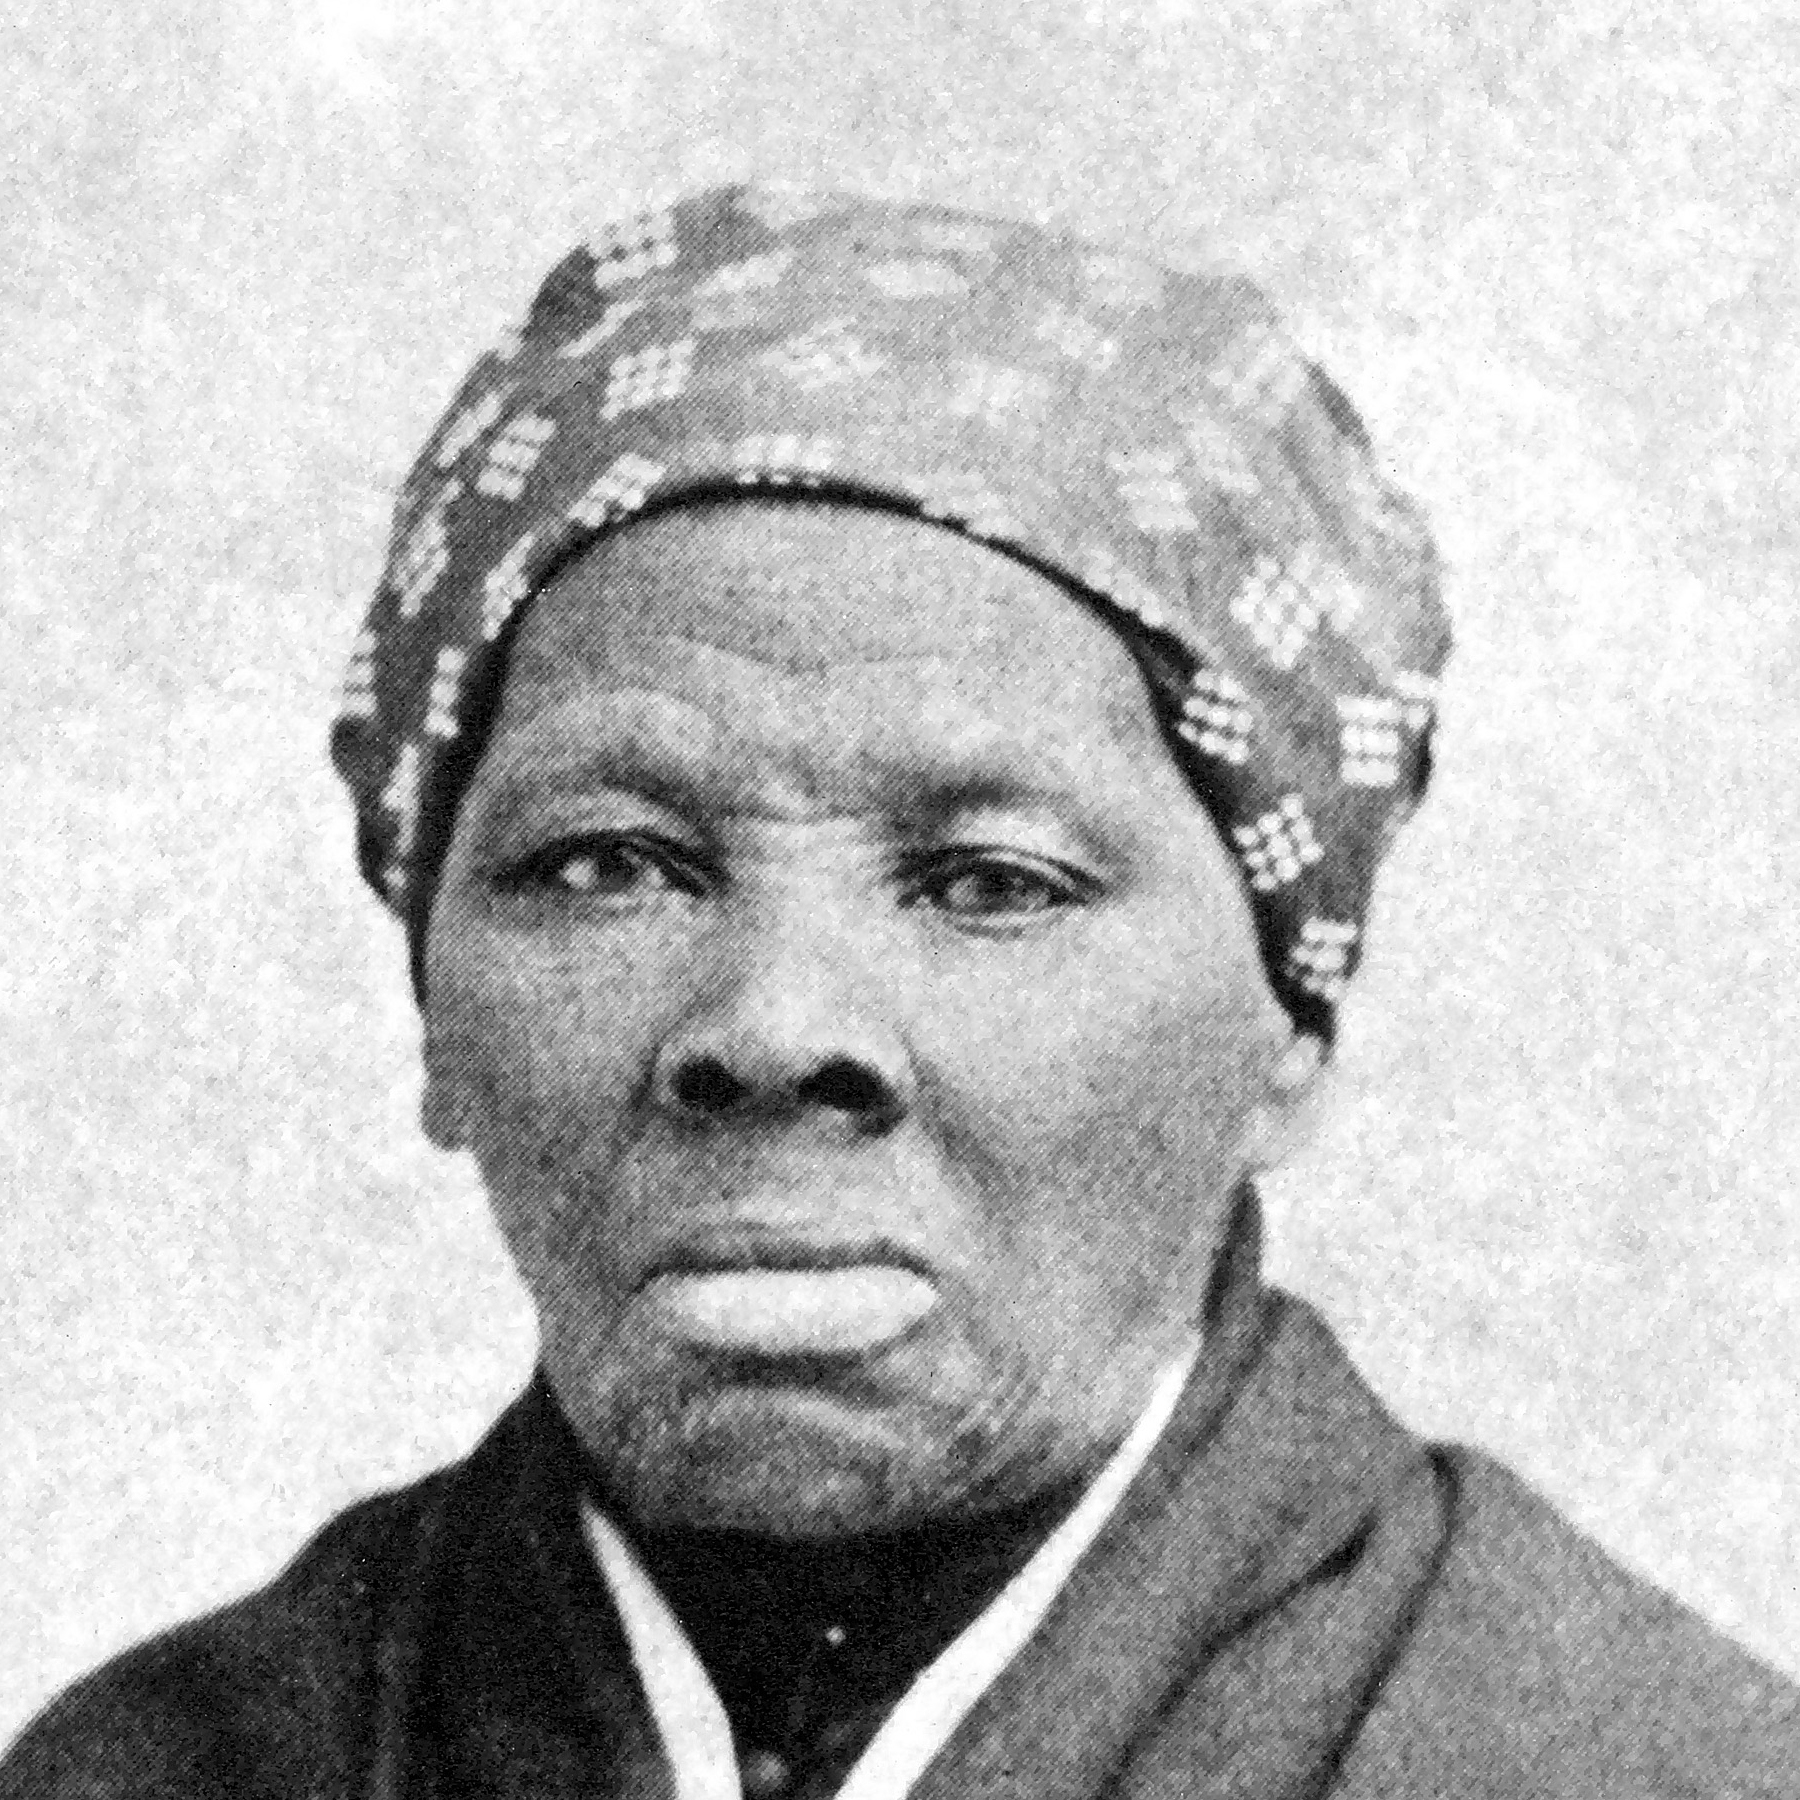 Harritet Tubman